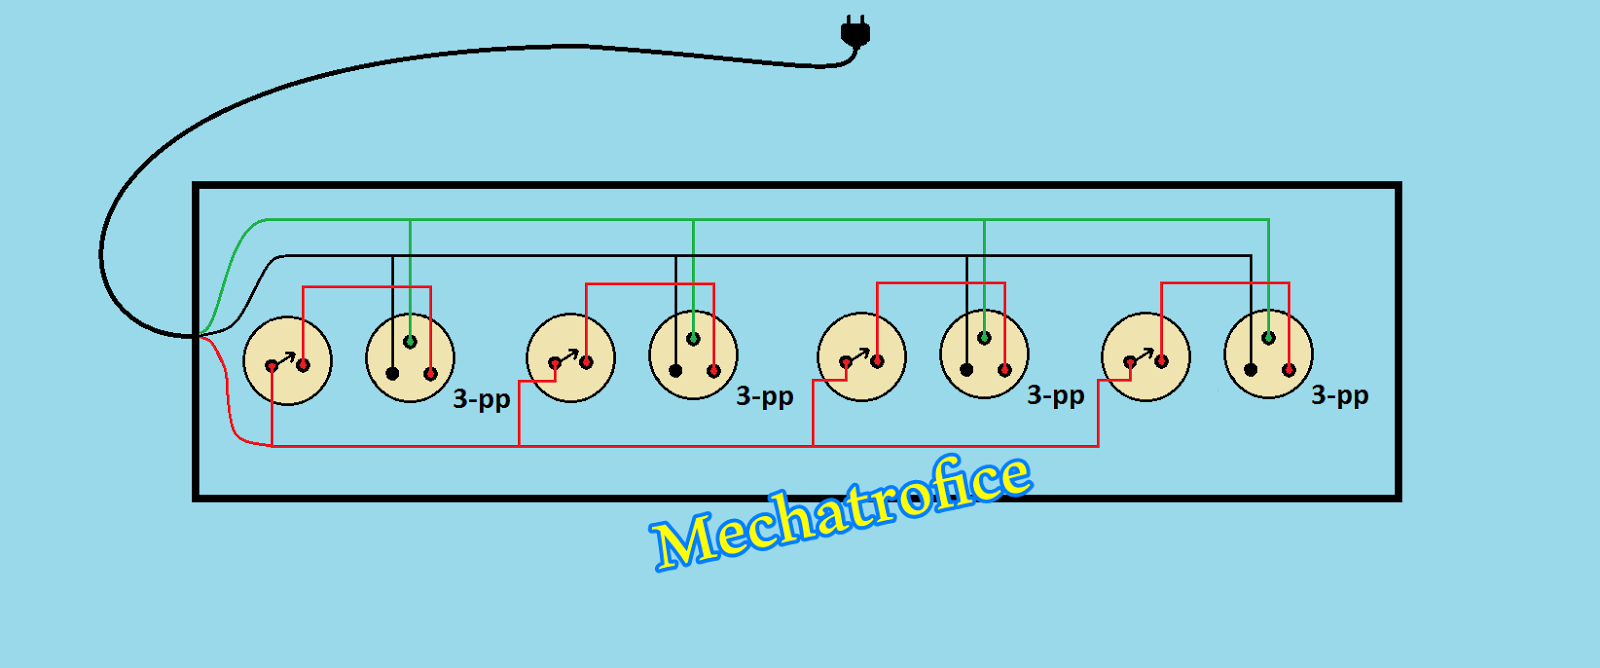 extension cord plug wiring diagram [ 1600 x 668 Pixel ]